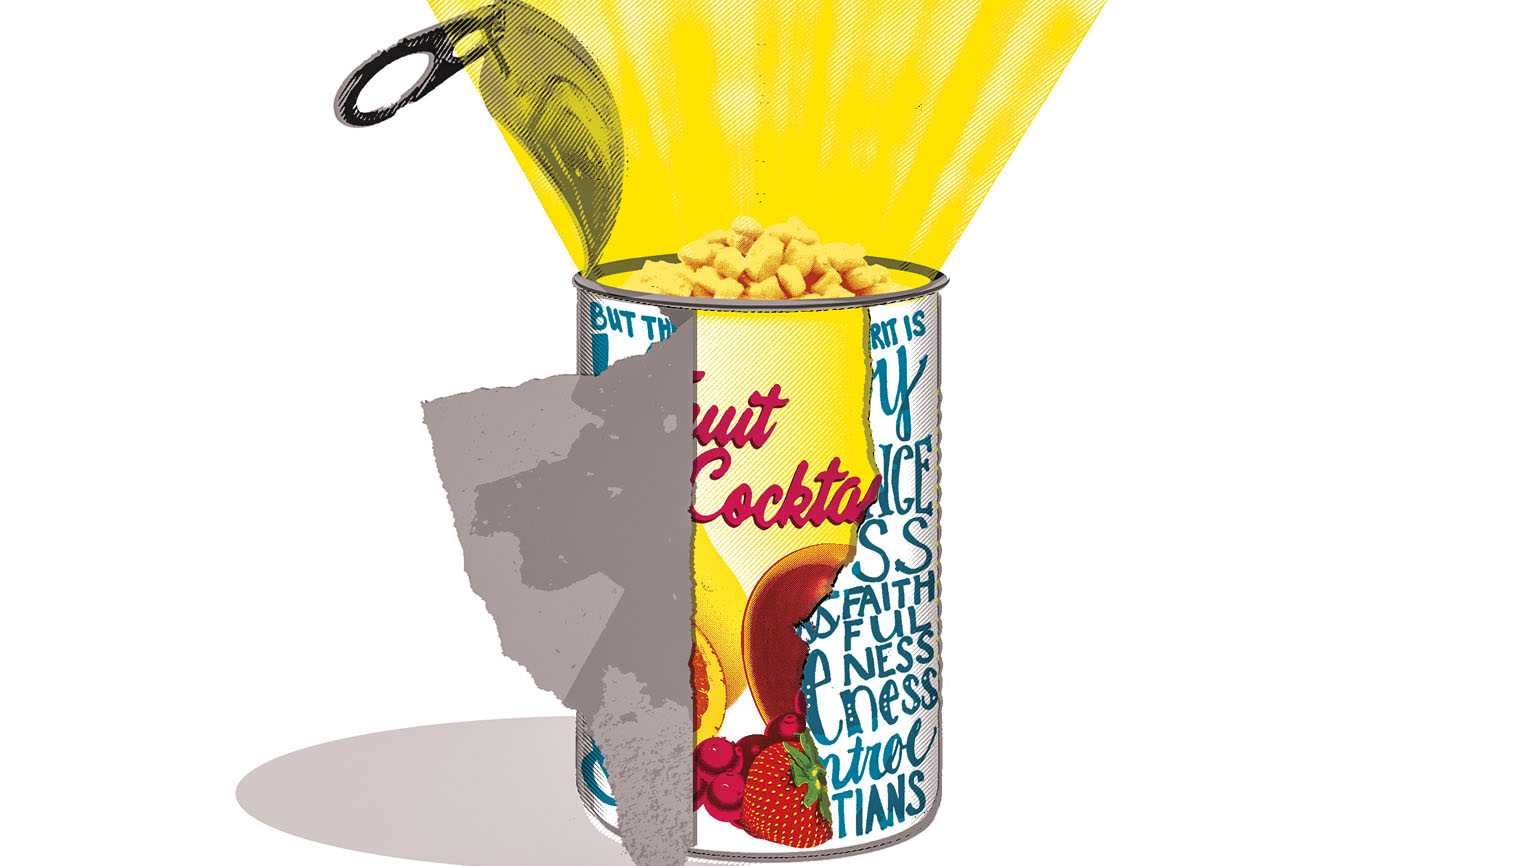 Illustration of corn in a fruit cocktail can